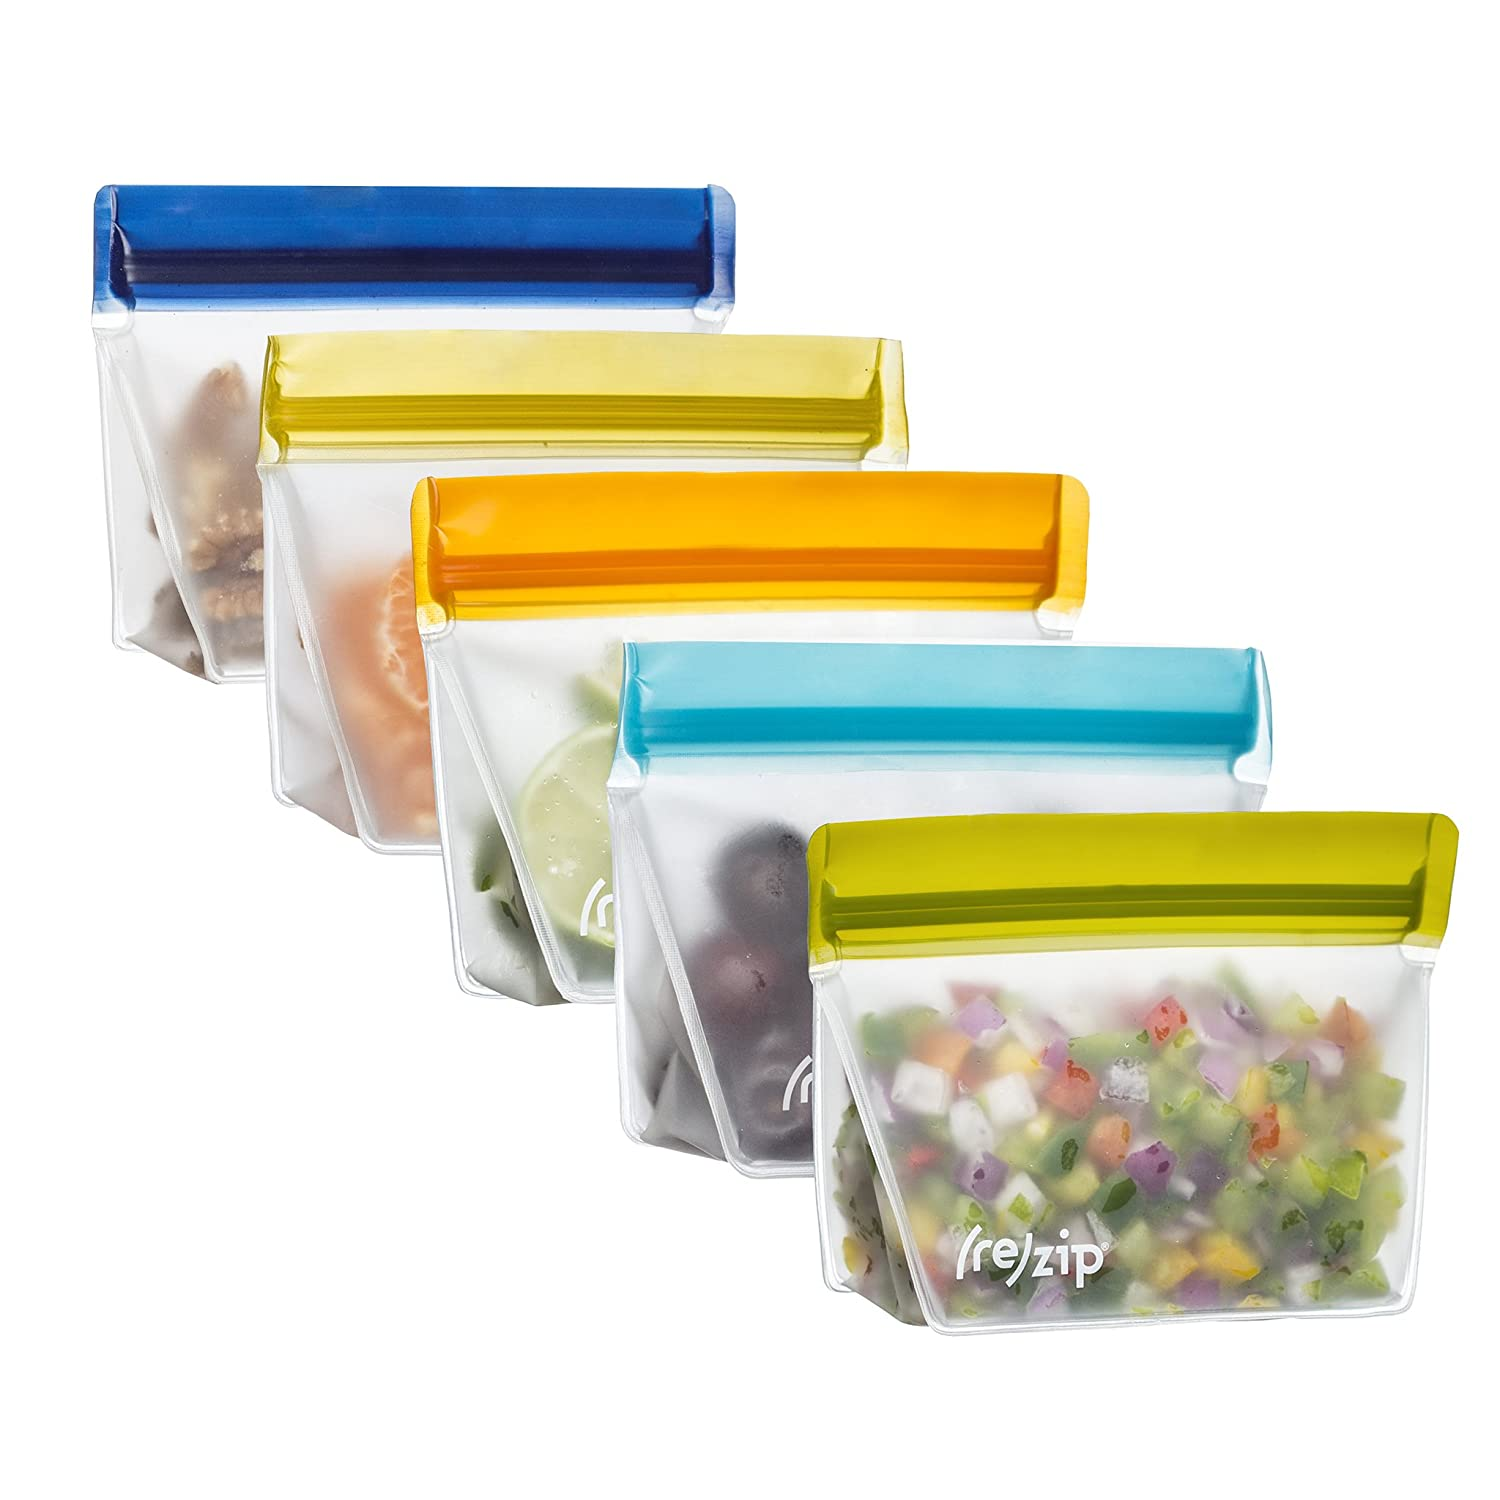 rezip Stand-Up 1-Cup/8-ounce Leakproof Reusable Storage Bag 5-Pack (Multi-Color) BA936M-AOMYN